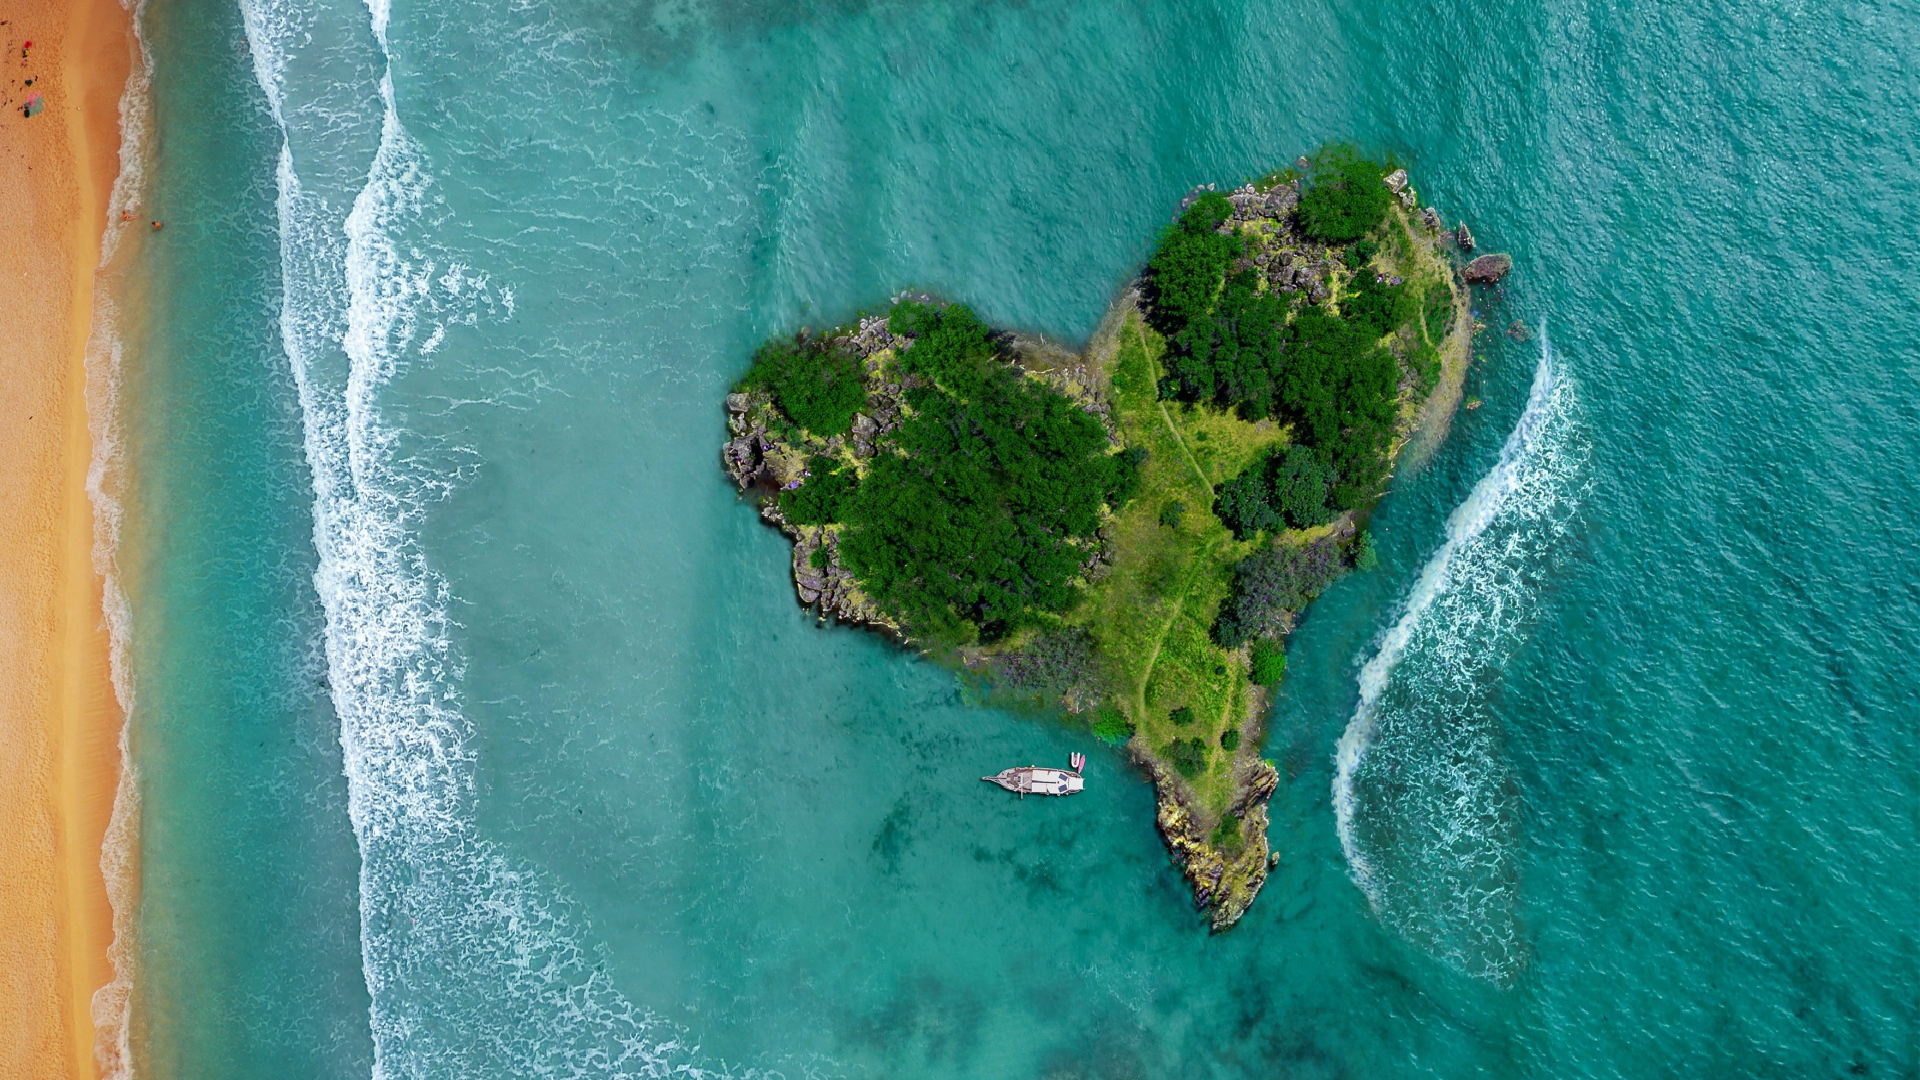 prospect,heart,aerial,summer,honeymoon,warmheartedness,transmitting aerial,shape,sight,love,nub,spunk,vacation,tropical,holiday,beach,gist,substance,center,shaped,of,seaside,air,island,view